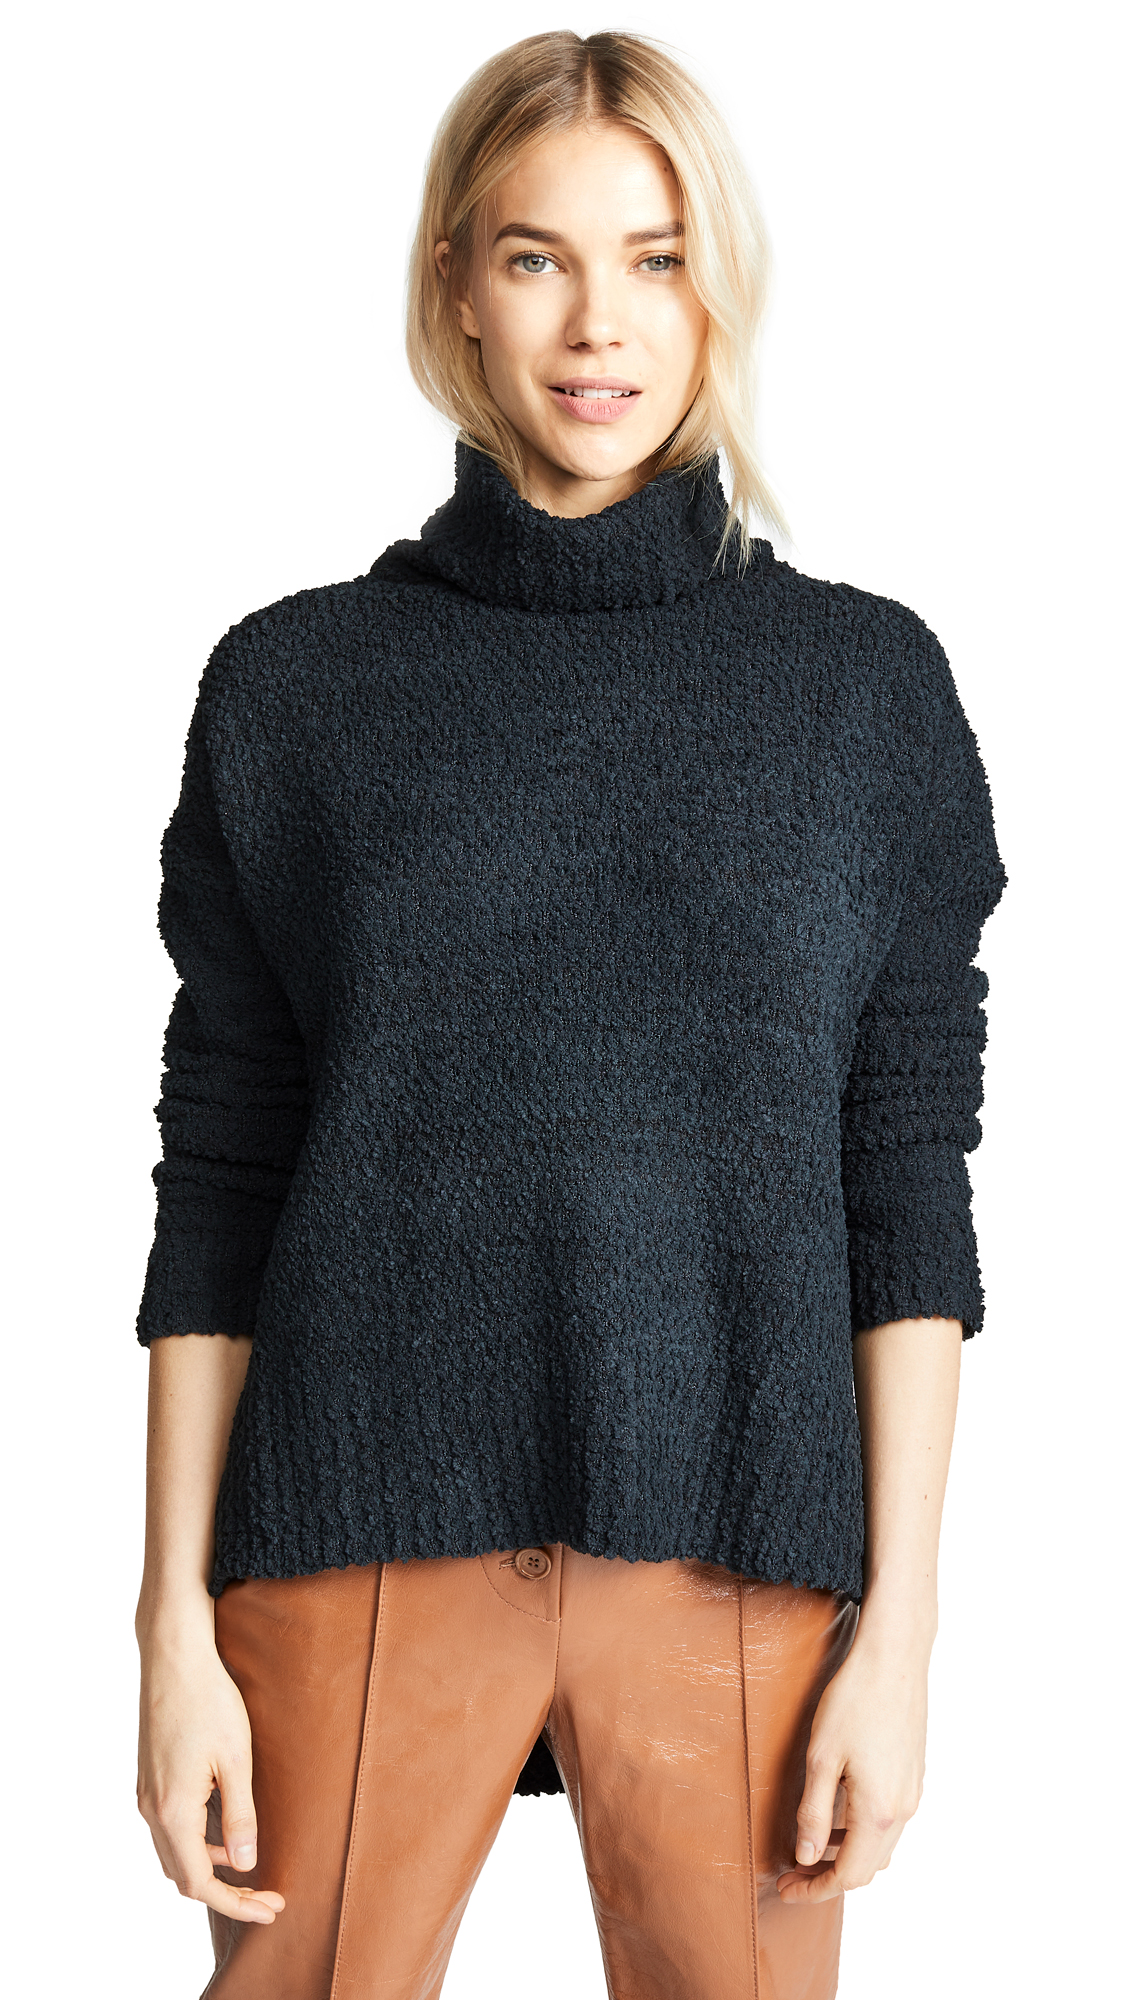 MINKPINK The One Boxy Knit Sweater in Black